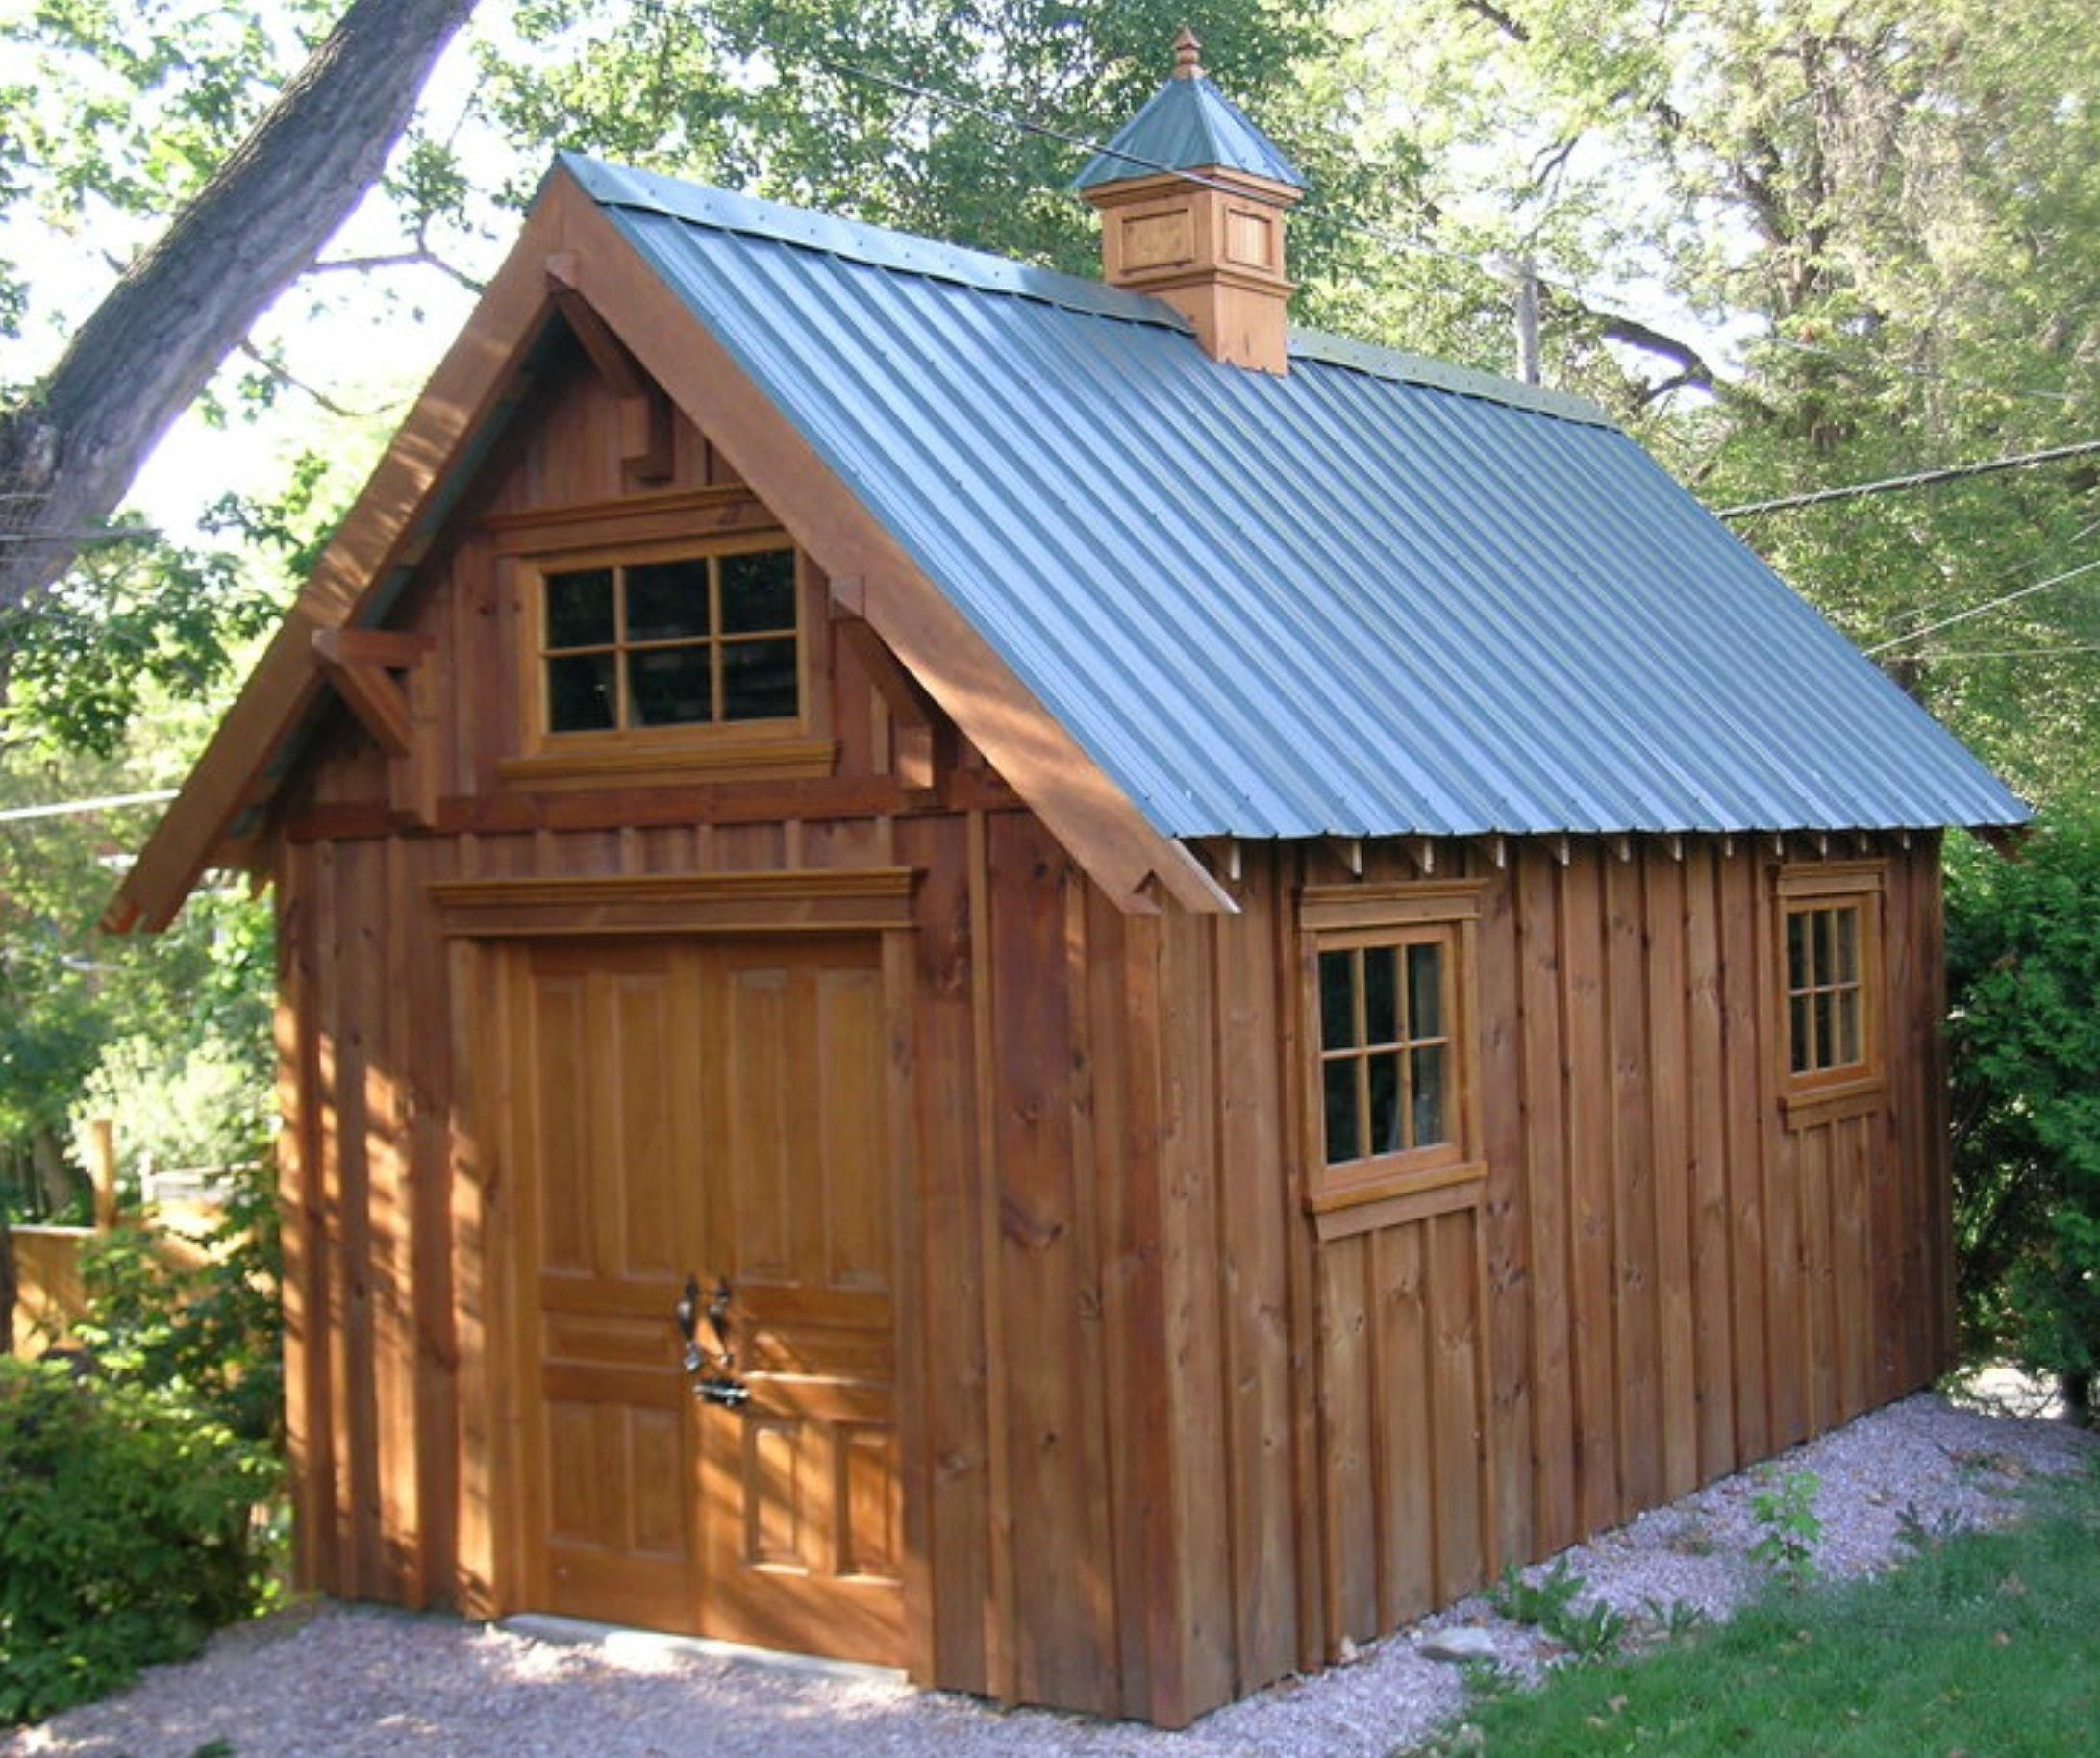 Erudite Carried Out Shed Building Plans Text For Information Building A Shed Backyard Shed Shed Design